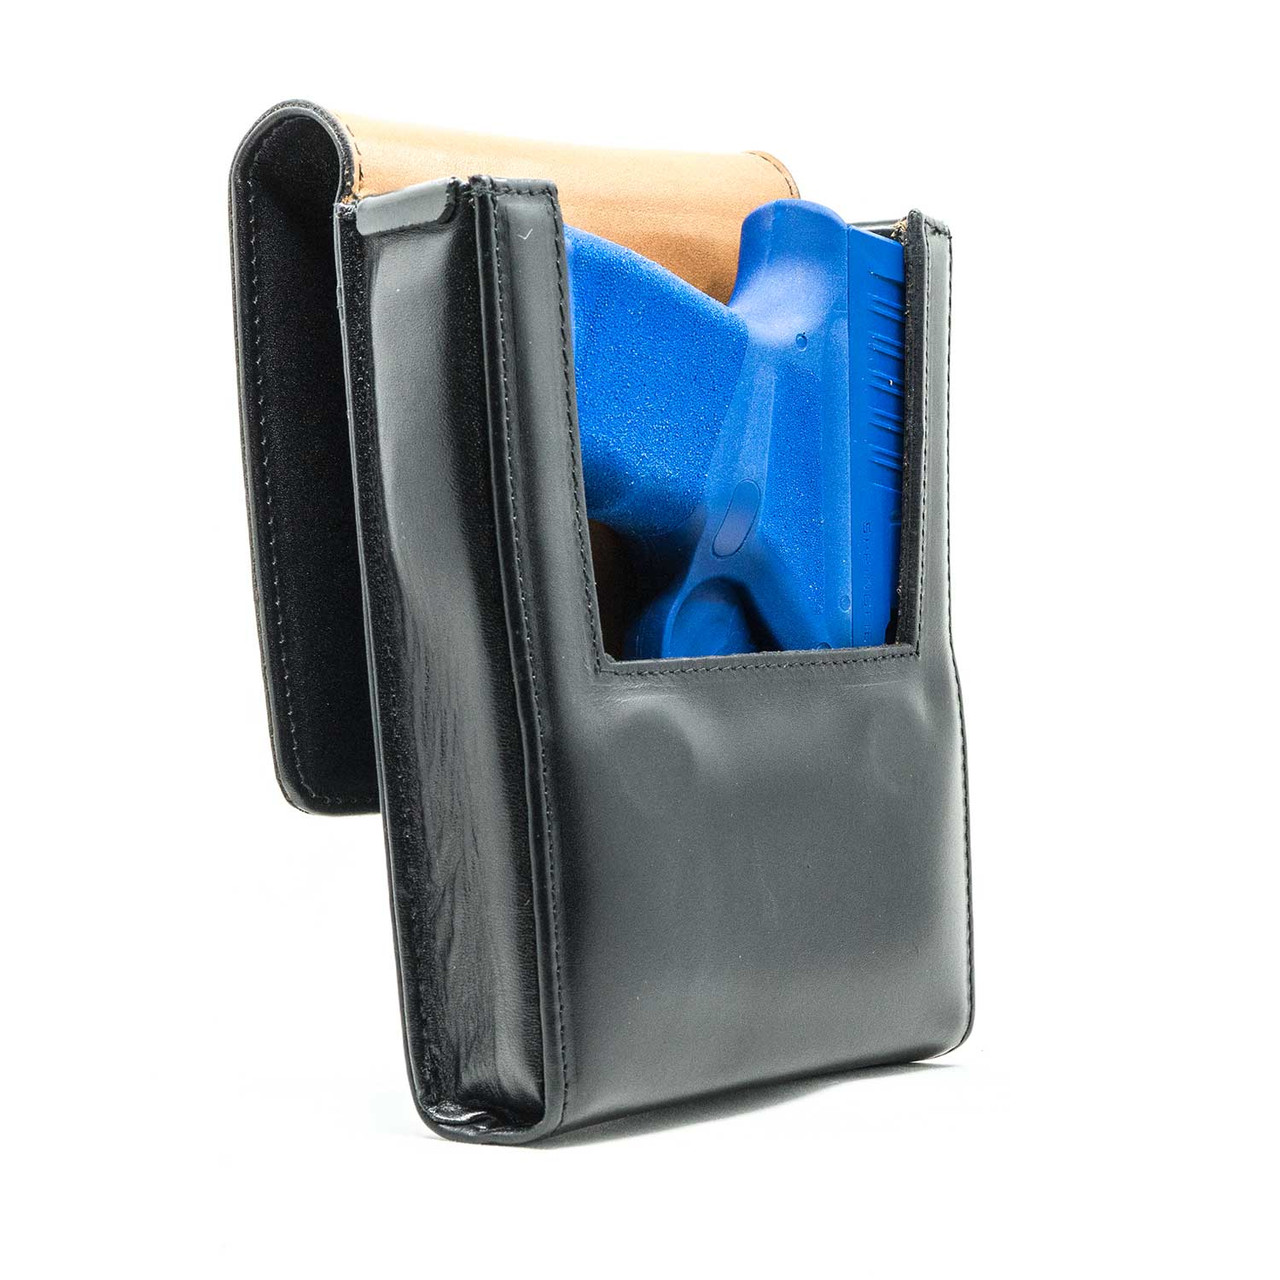 Springfield Hellcat Concealed Carry Holster (Belt Loop)